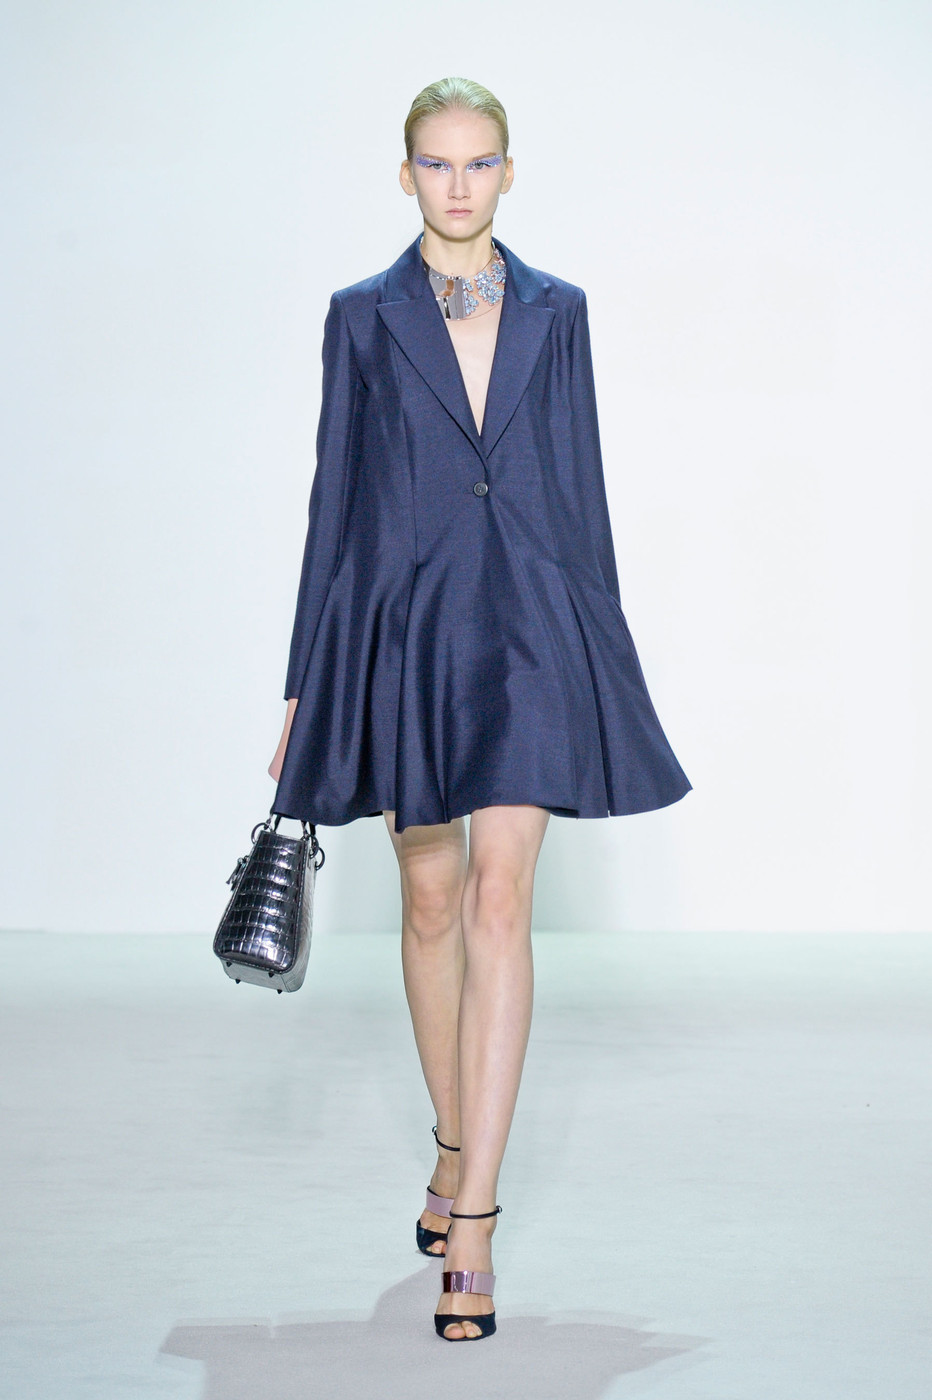 Christian Dior Spring 2013 Runway Pictures